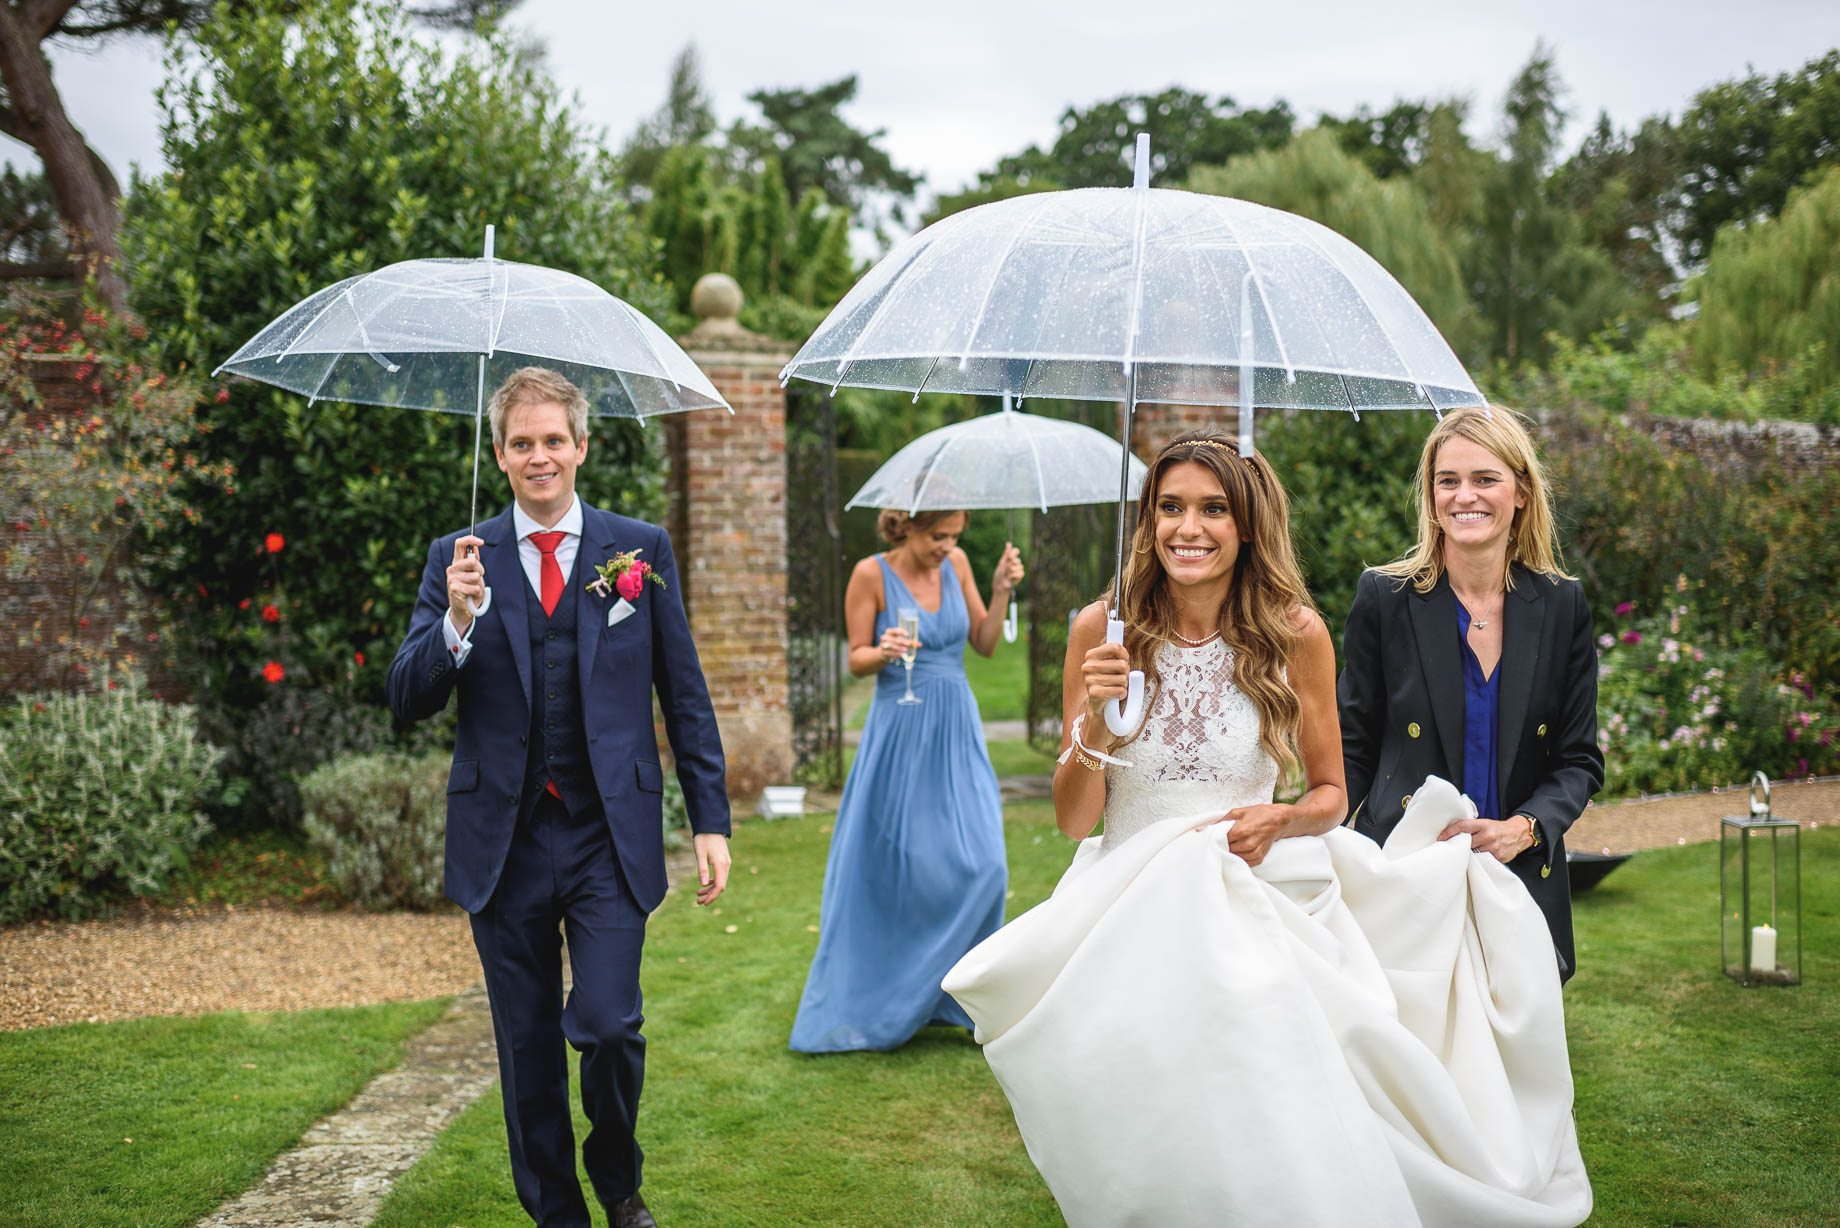 surrey-wedding-photography-guy-collier-photography-claire-and-tom-144-of-227